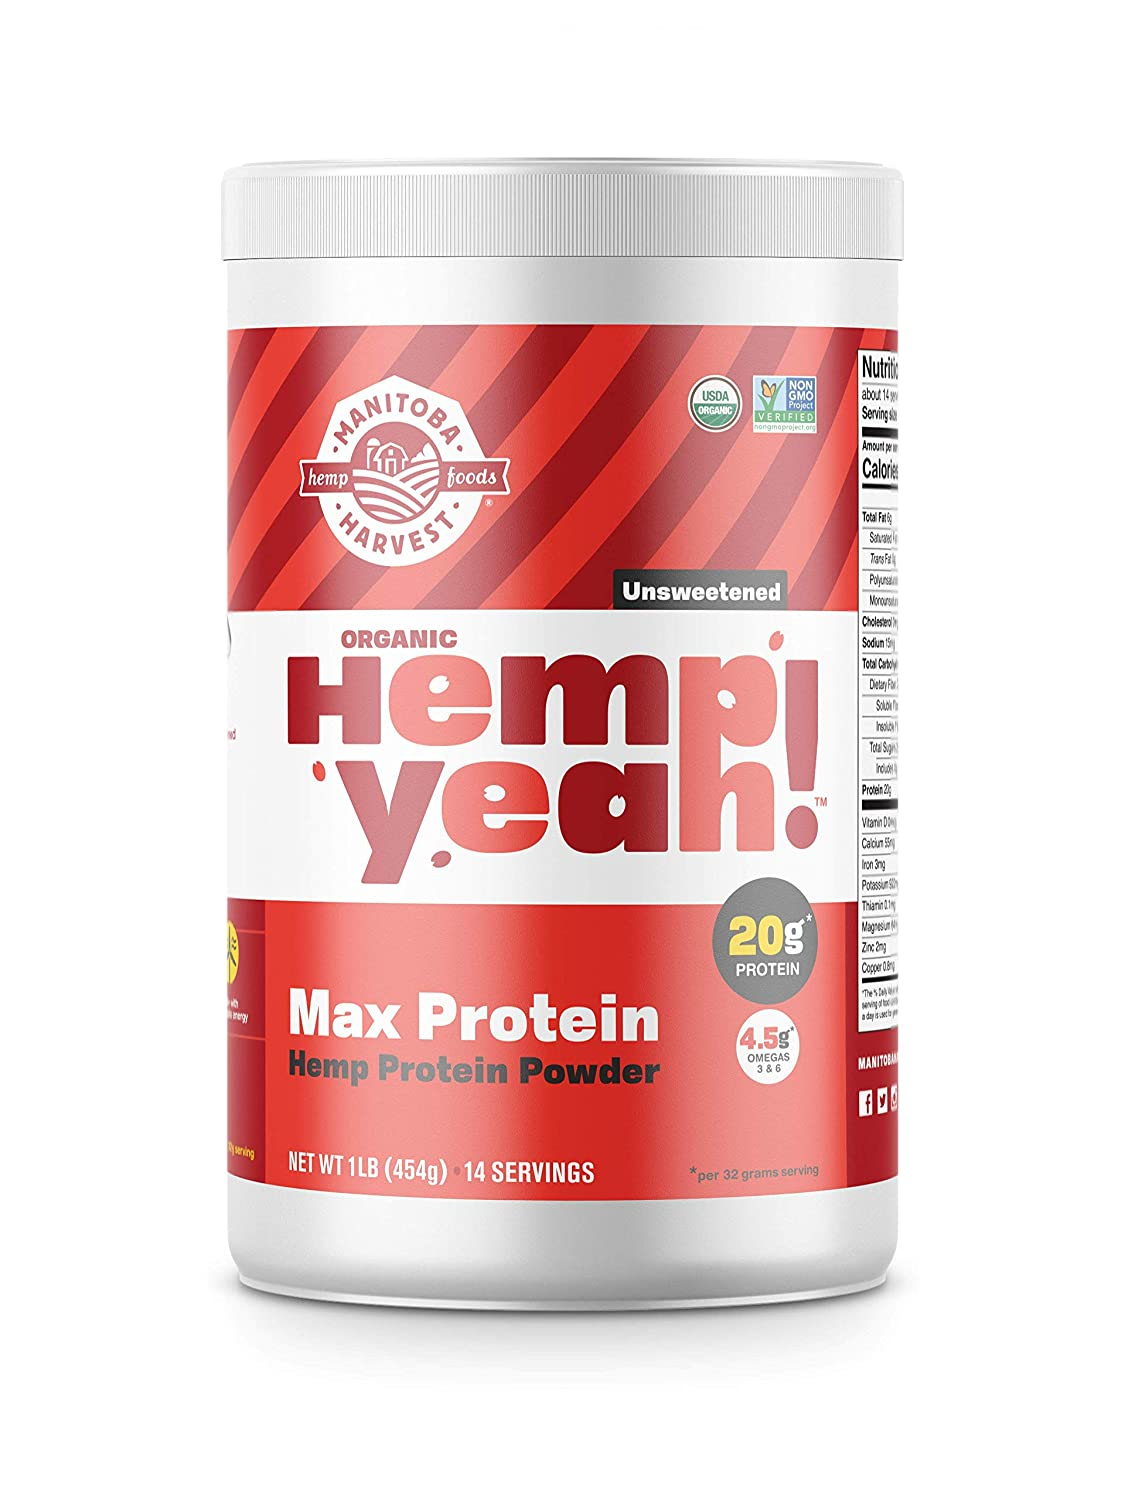 Manitoba Harvest Hemp Yeah! Organic Max Protein Powder, Unsweetened, 16oz; with 20g protein and 4.5g Omegas 3&6 per Serving, Keto-Friendly, Preservative Free, Non-GMO